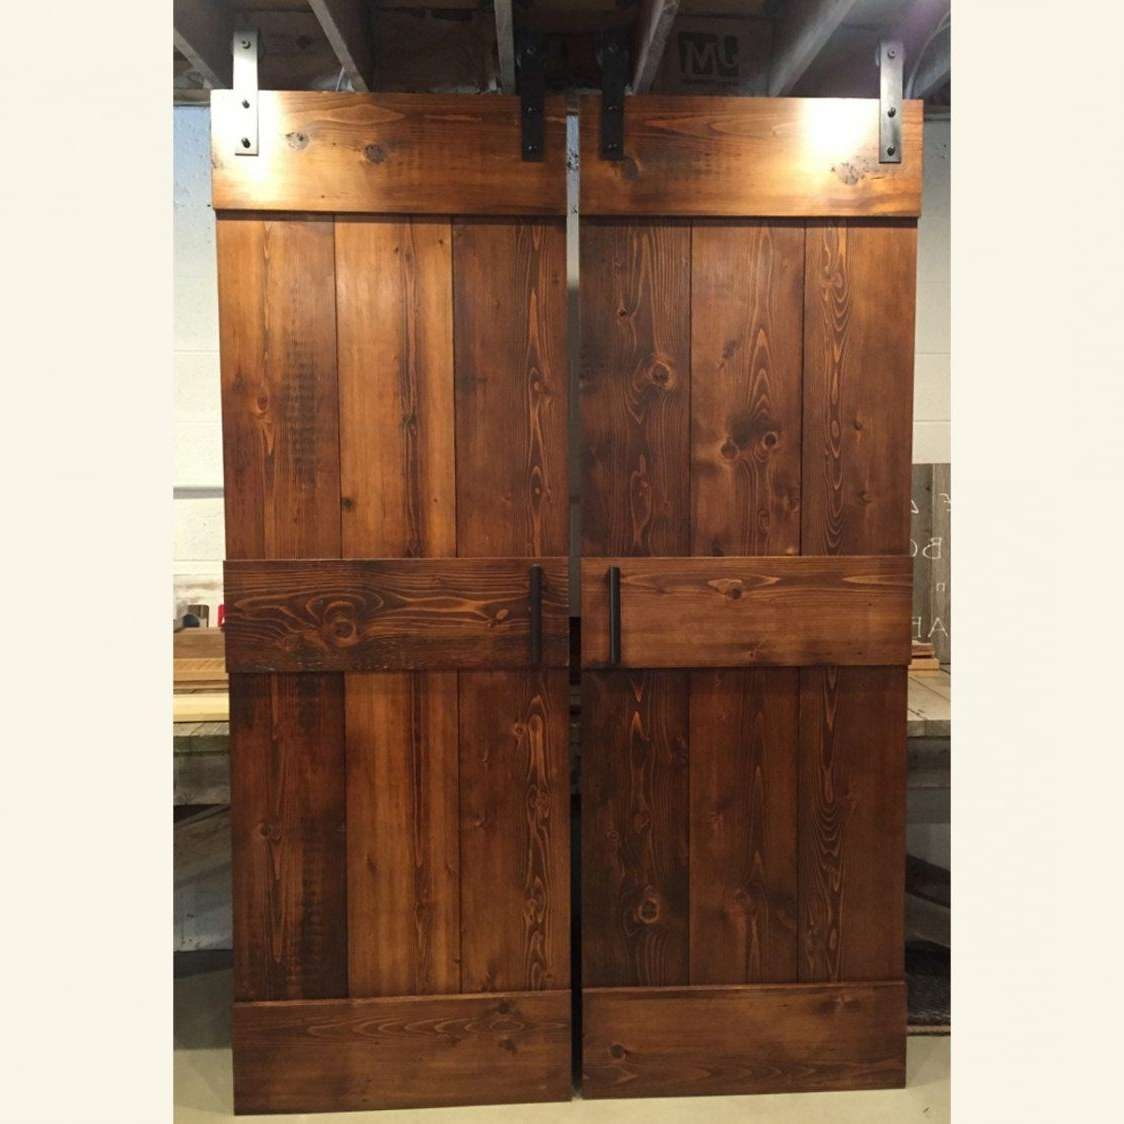 Farm Style Barn Door | Furniture From The Barn Inside White Pine Sideboards (View 6 of 20)